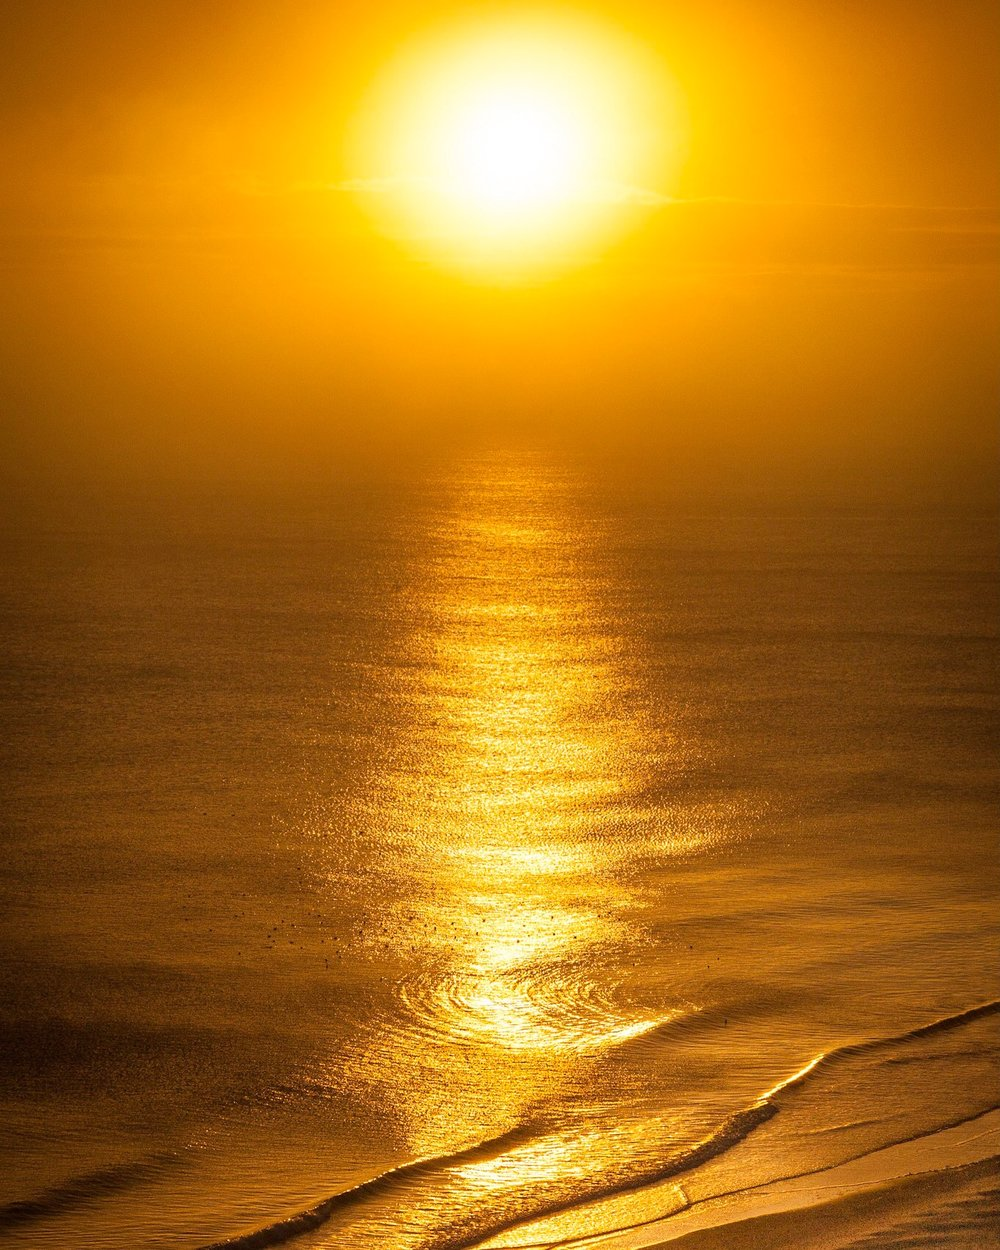 Golden sunshine on the beach by Rick McEvoy Bournemouth Photographer